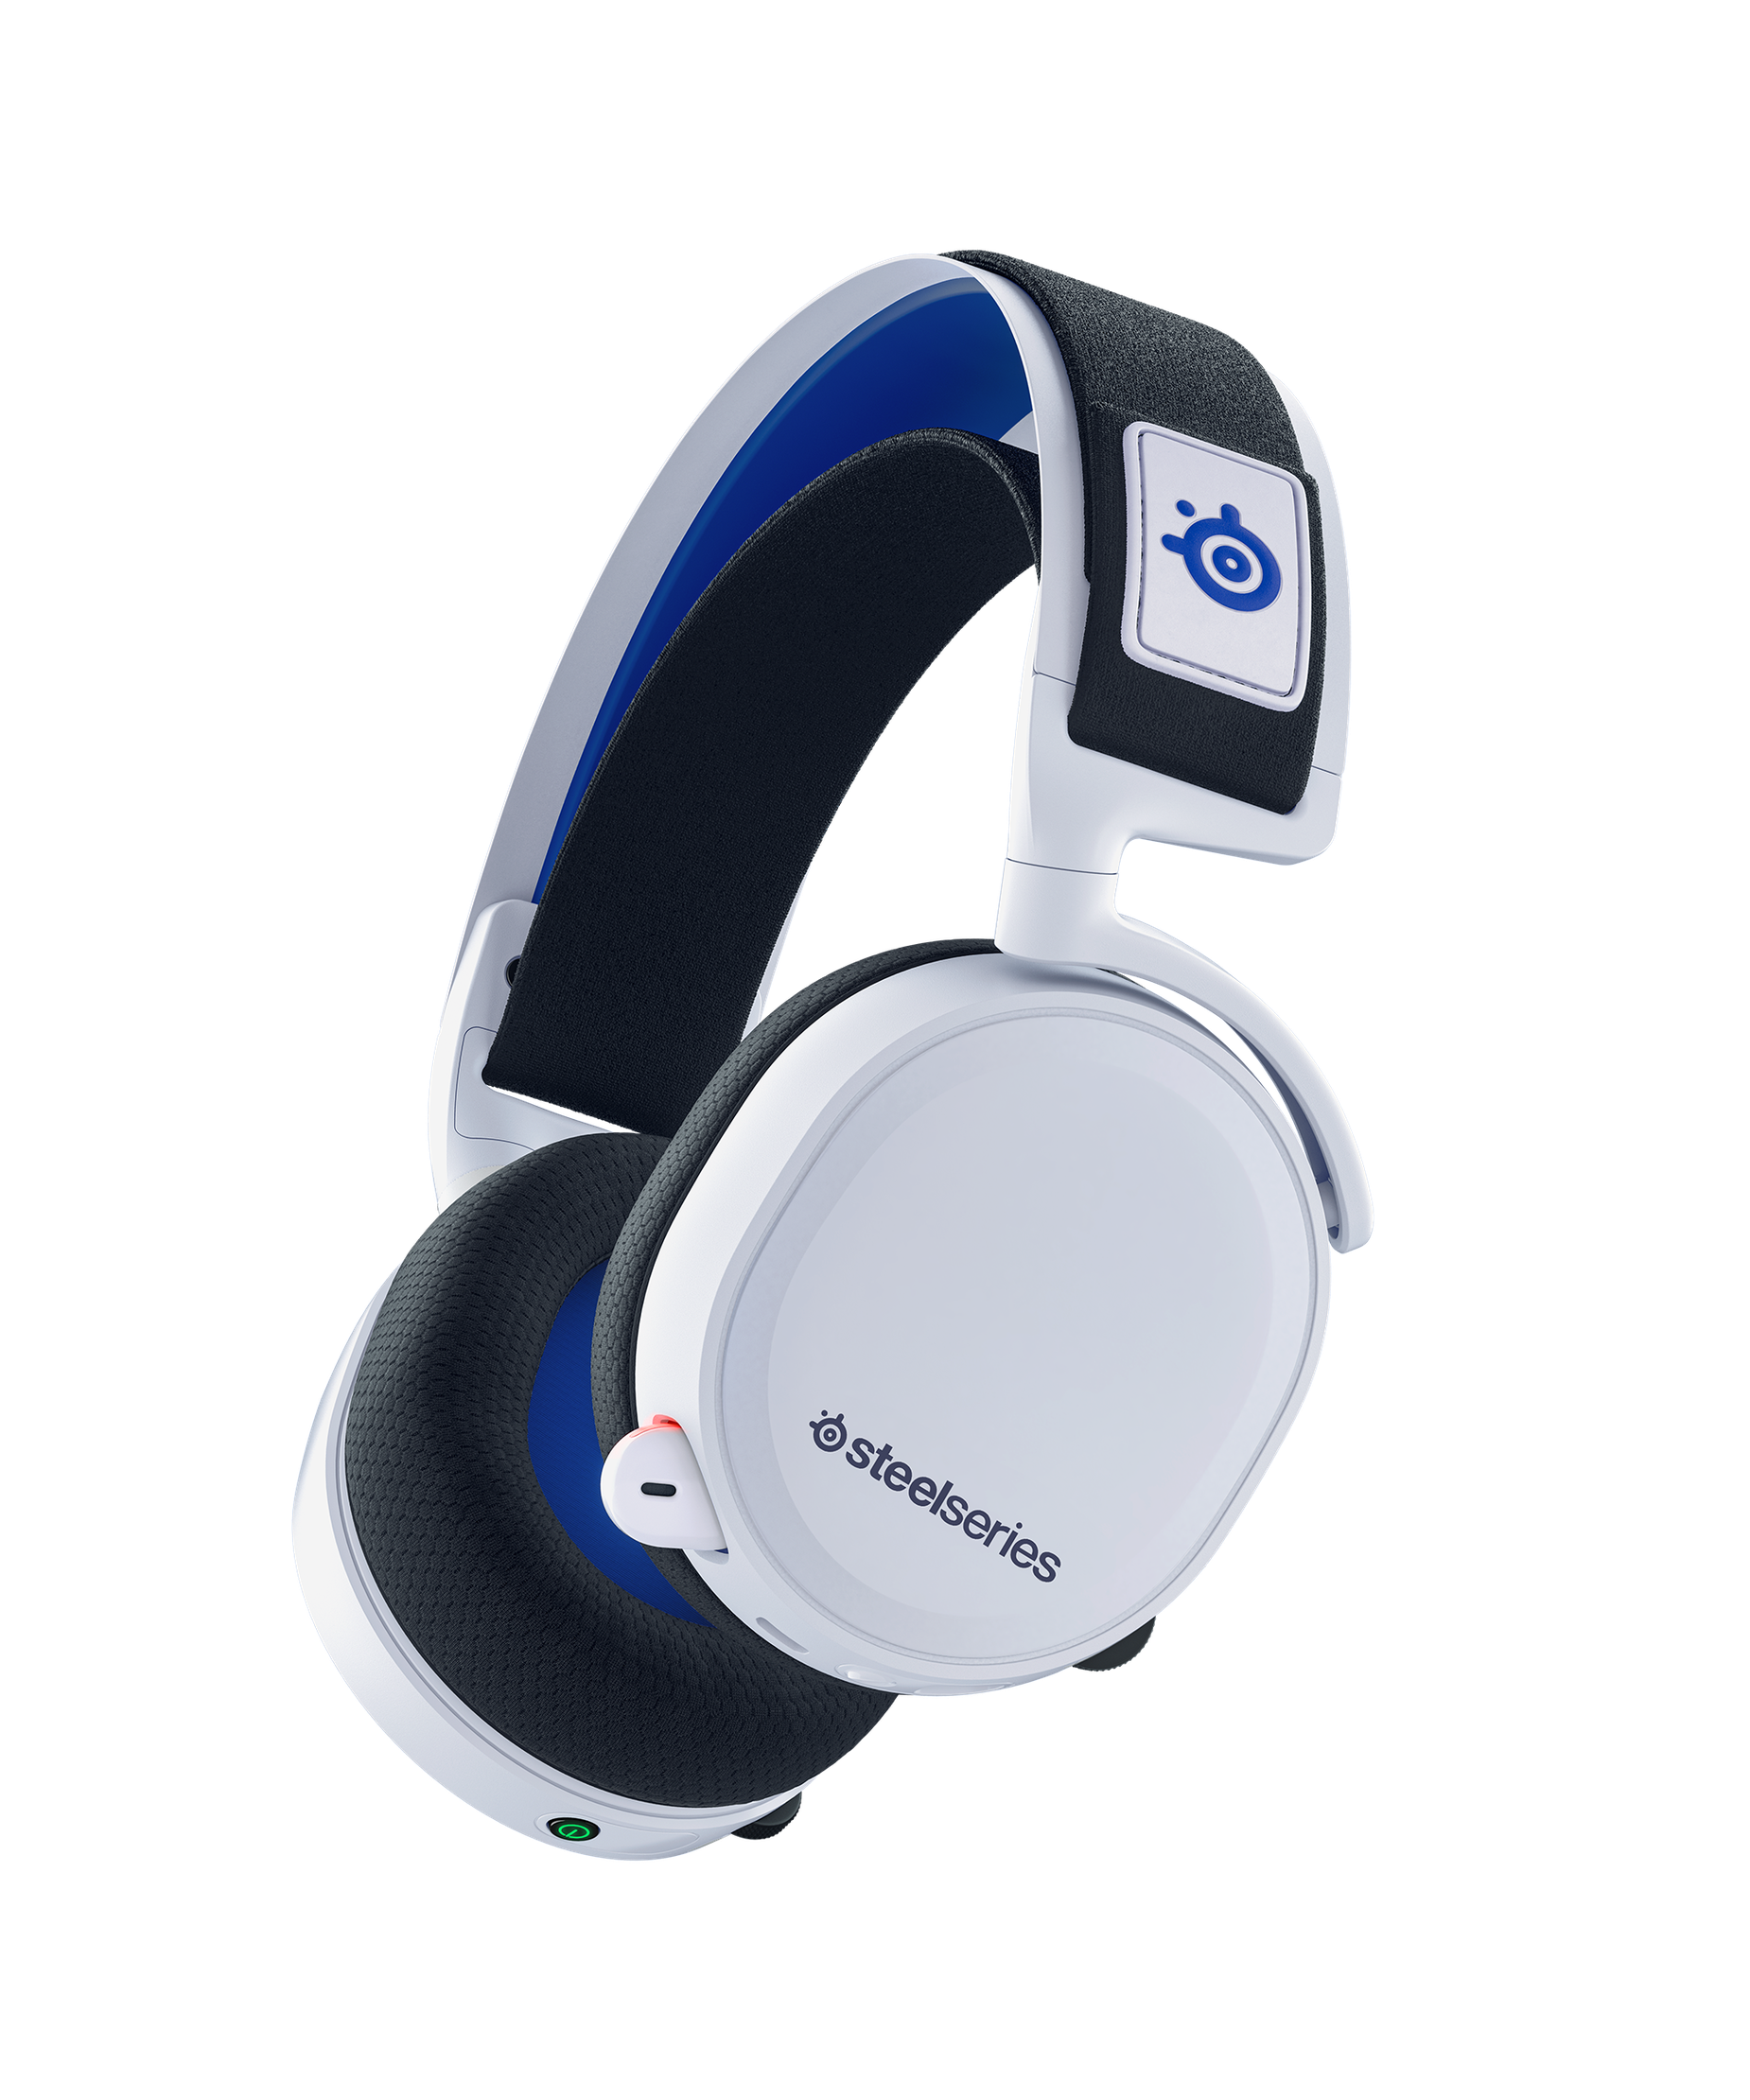 Product render of Arctis 7P headset at an angle